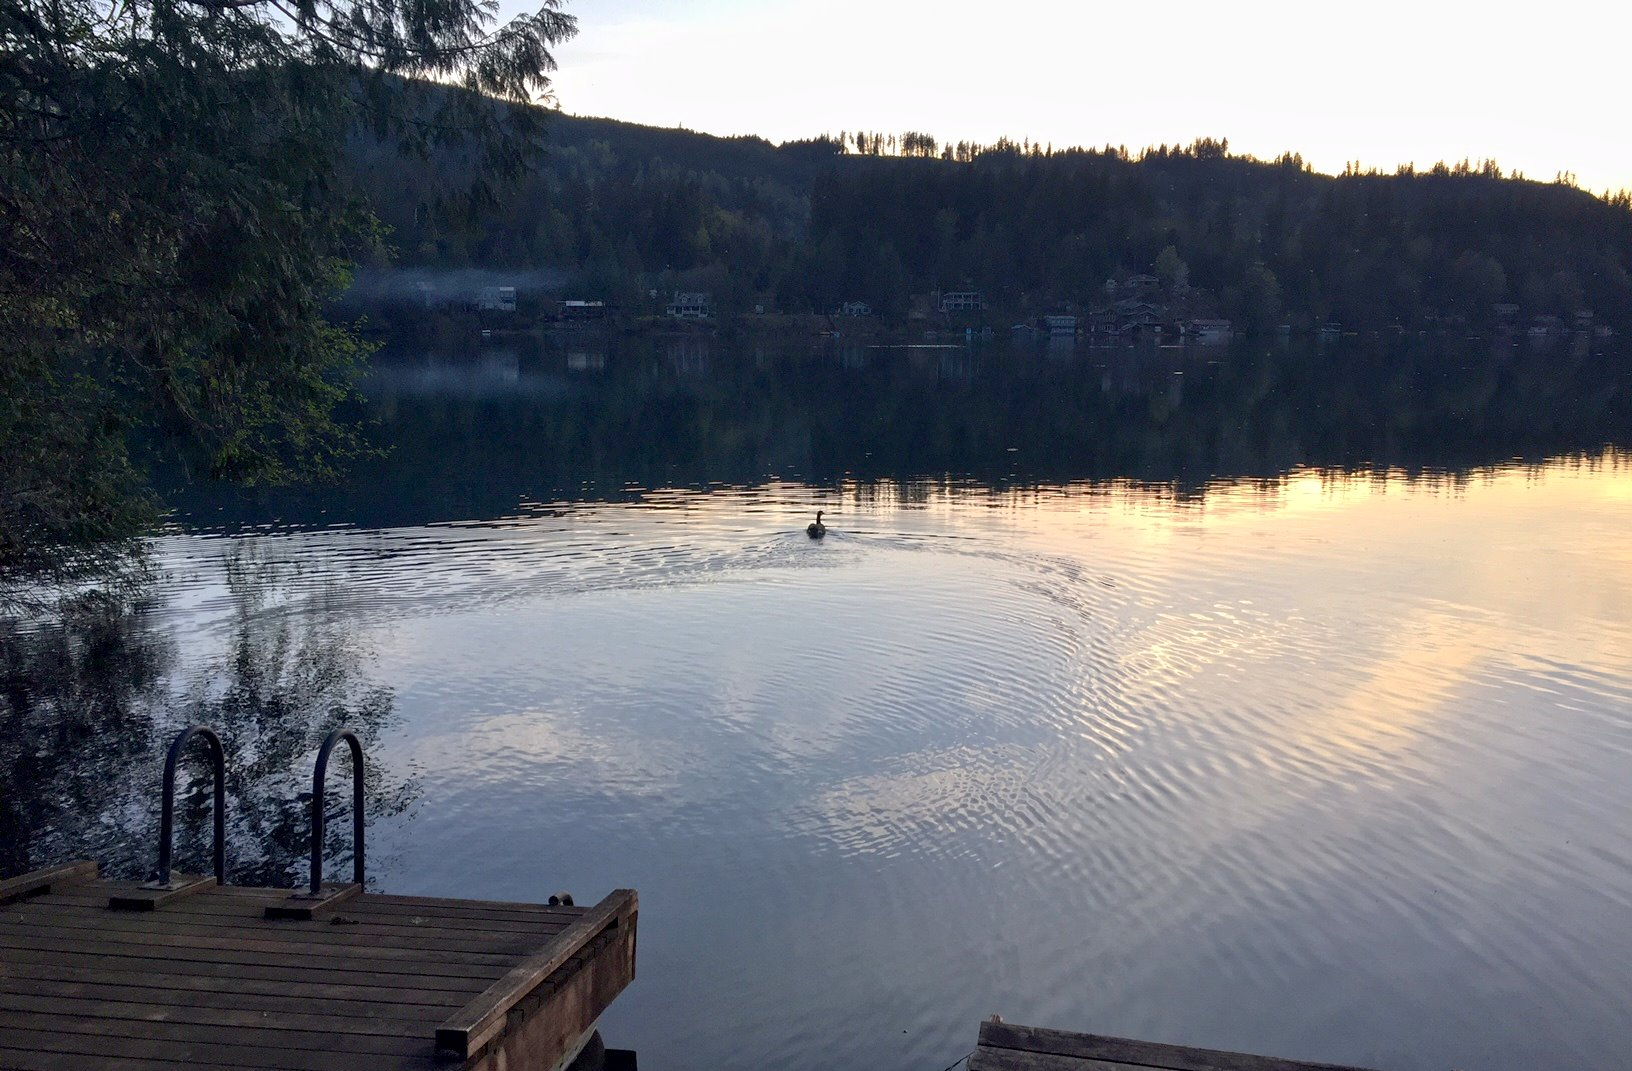 Dock over looking Silver Lake